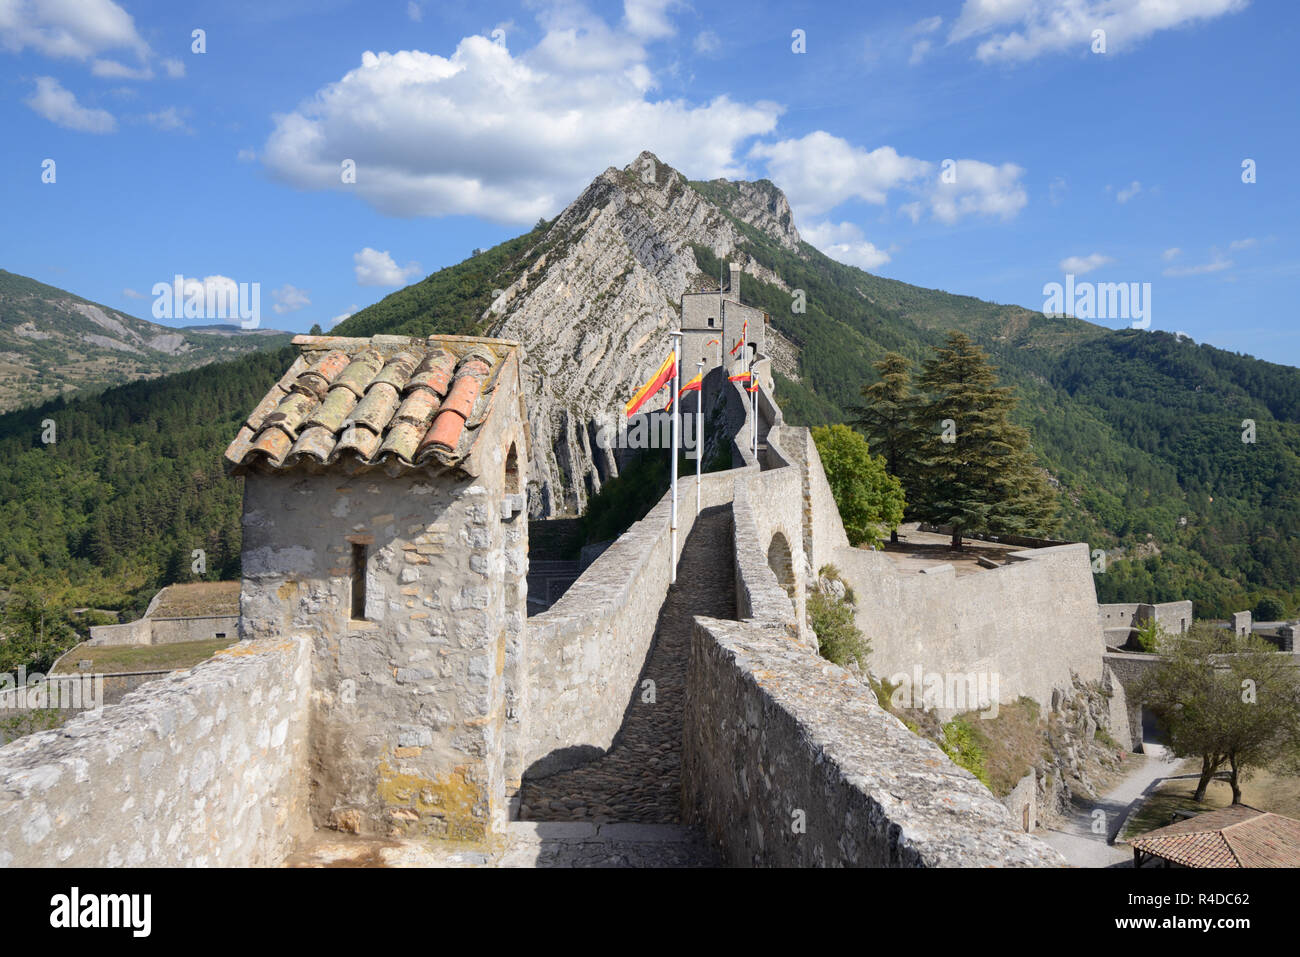 Upper Rampart & Sentry Box of the Medieval Citadel, Fort, Fortress or Castle Sisteron Alpes-de-Haute-Provence Provence France - Stock Image